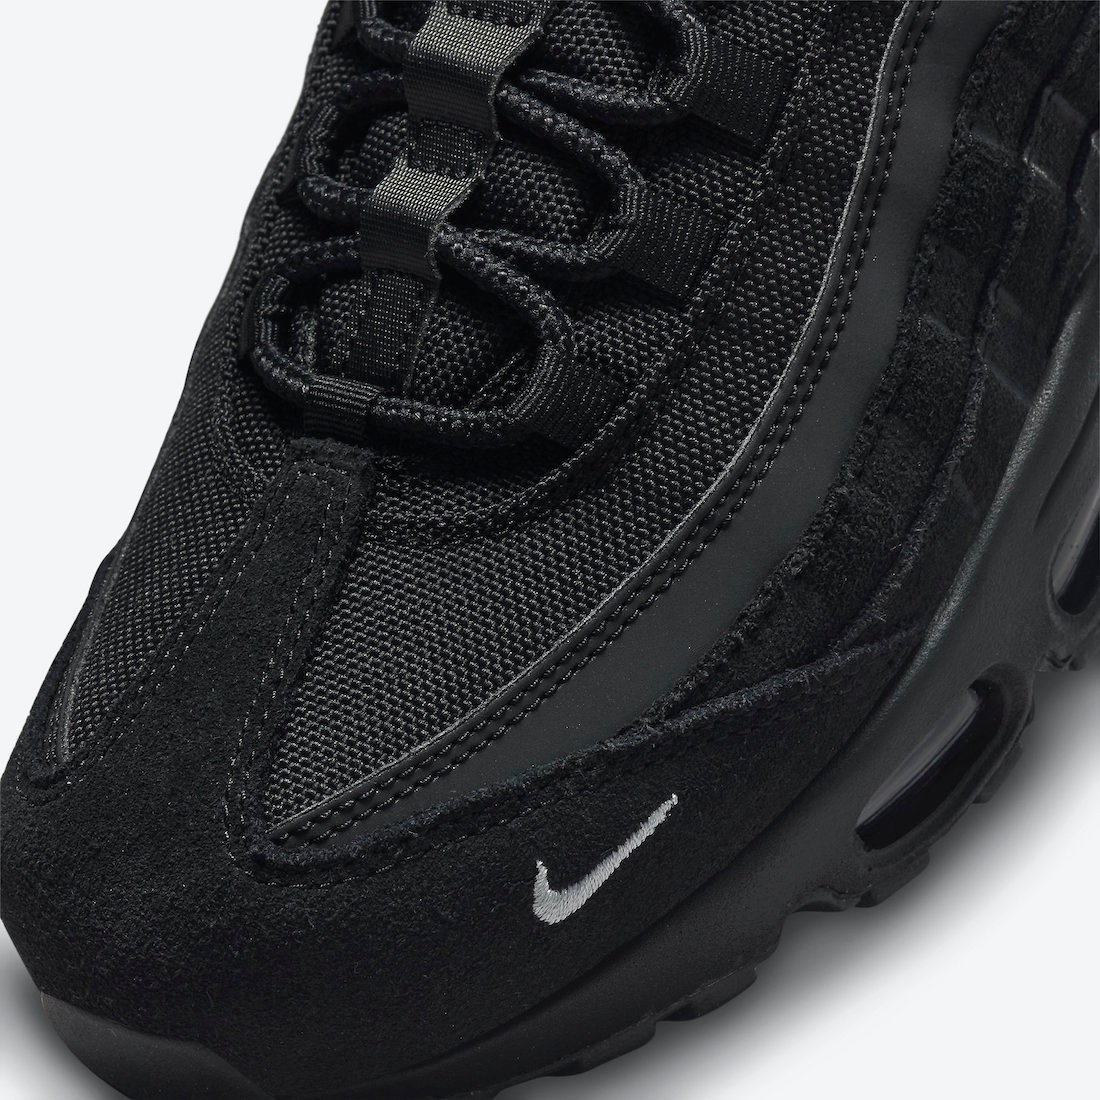 Nike Air Max 95 Black Yellow DO6704-001 Release Date Info